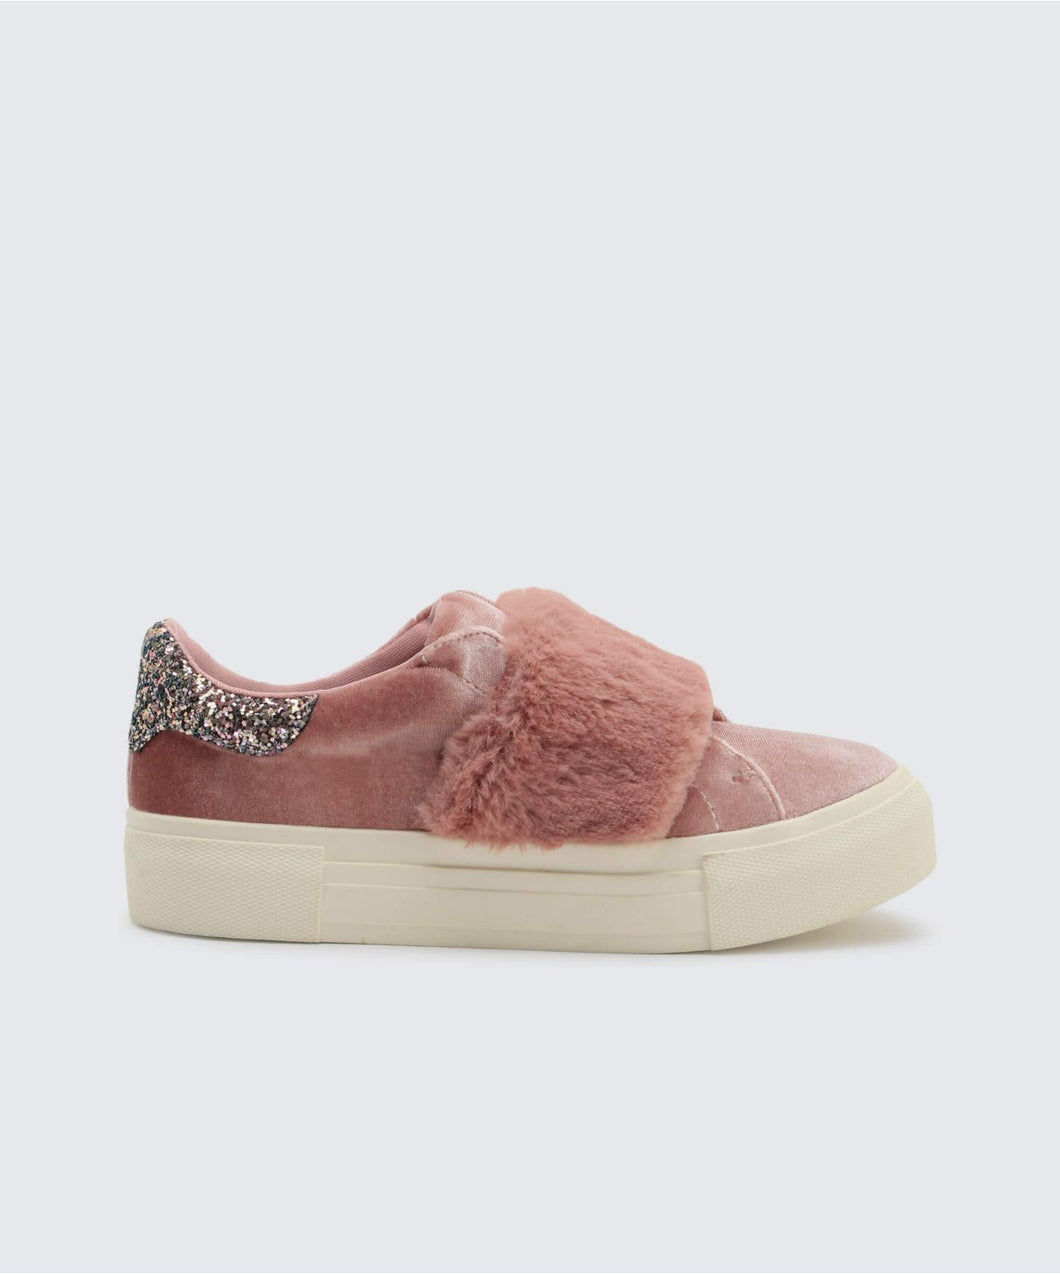 CAISI SNEAKERS MAUVE -   Dolce Vita